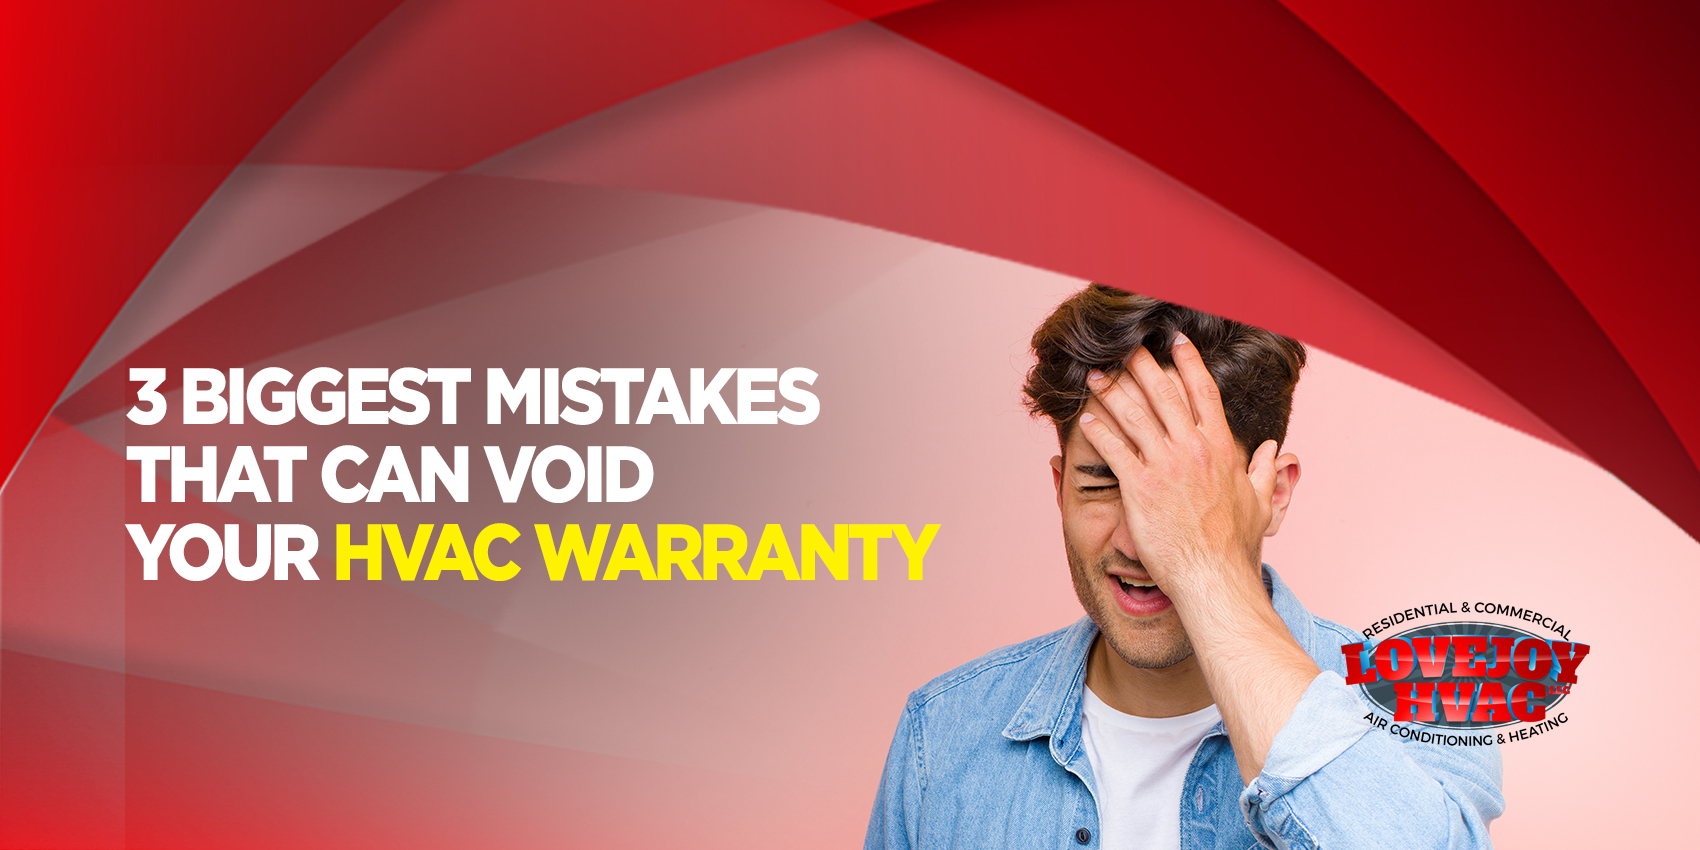 3 Biggest Mistakes That Can Void Your HVAC Warranty